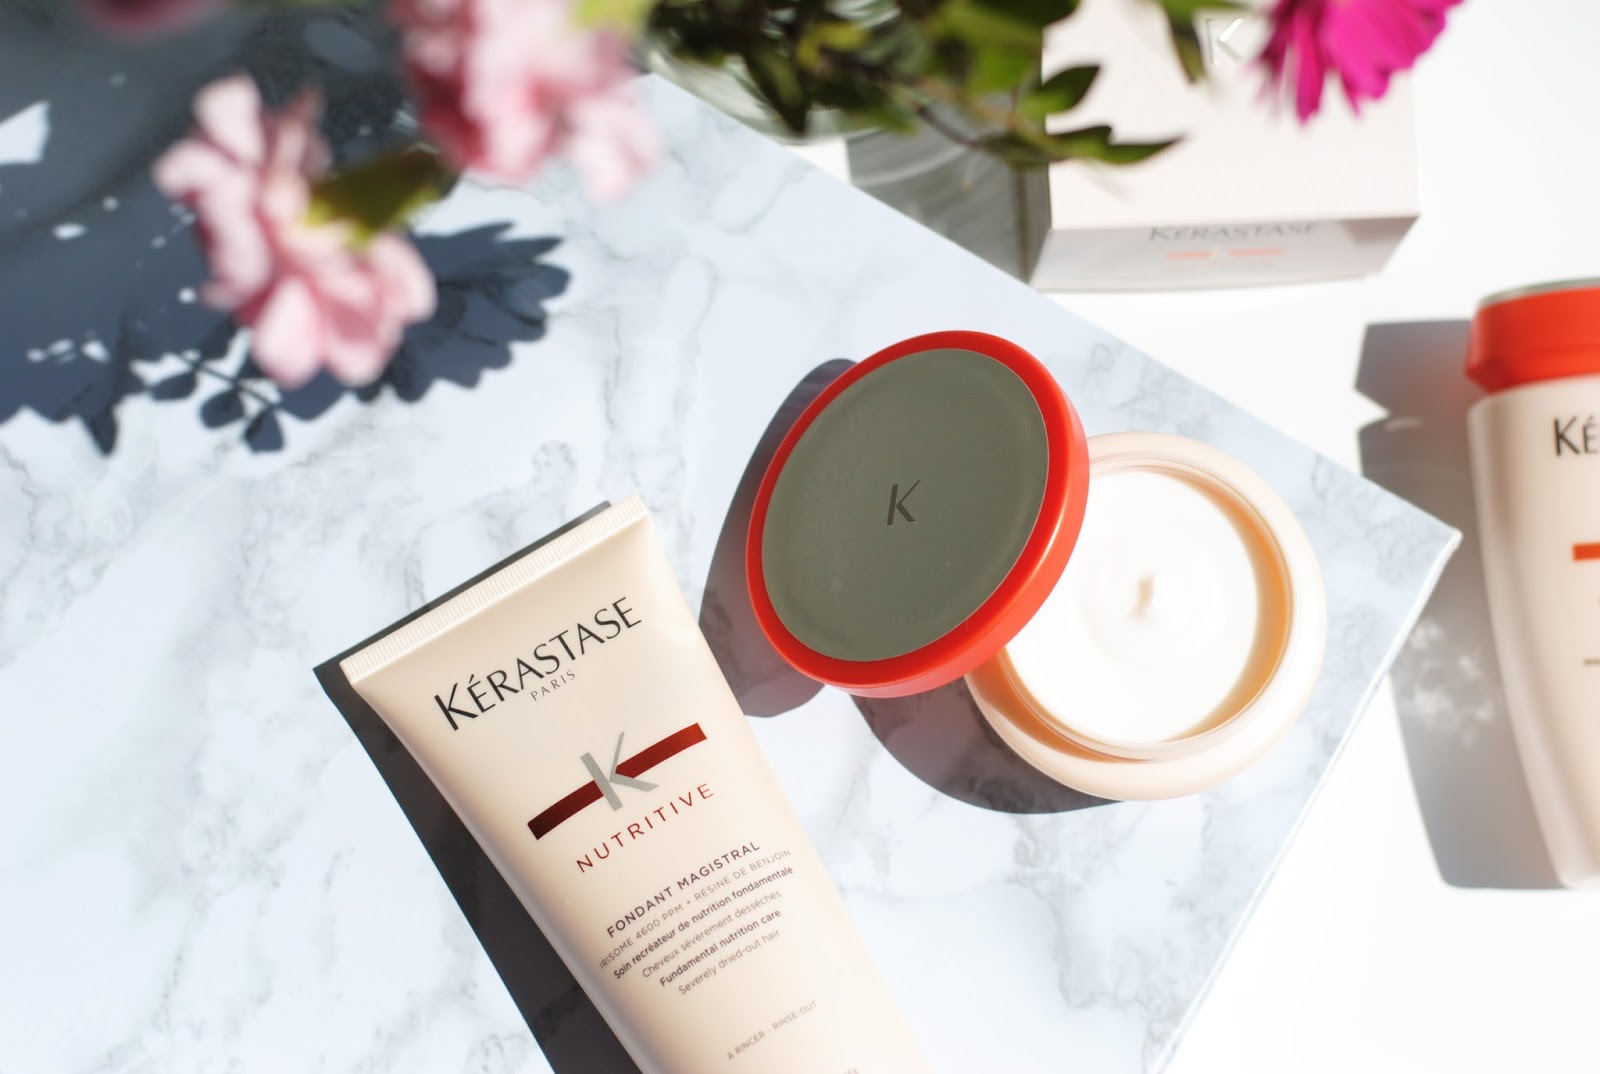 KÉrastase NUTRITIVEMasquintense - A customer favourite, Kérastase has a good selection of different hair masks to suit all different hair types and needs. However a good all-rounder for many different hair types, which can help boost hair after suffering from winter dryness is their range,Nutritive. Within this series they have, two different hair mask, one for thick and one for thin hair, which contain On-Surface Technology that envelops the hair fiber from root to tip, without giving any unwanted weight.To see how to apply a hair mask, check out:https://youtu.be/HlRhupiwRyo